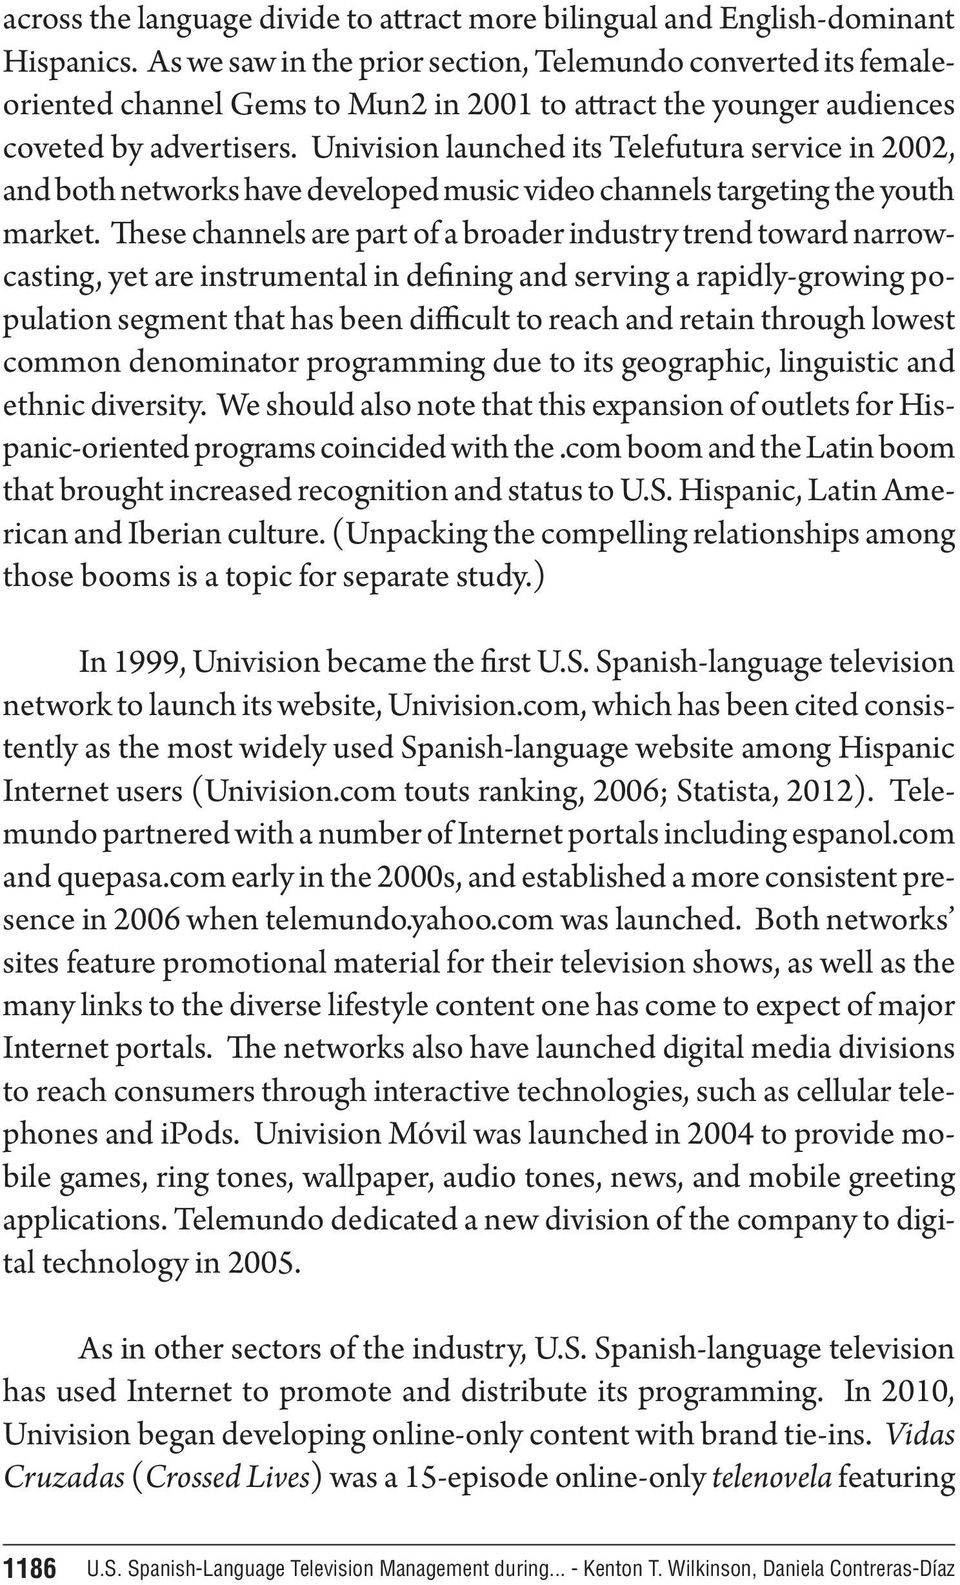 Univision launched its Telefutura service in 2002, and both networks have developed music video channels targeting the youth market.